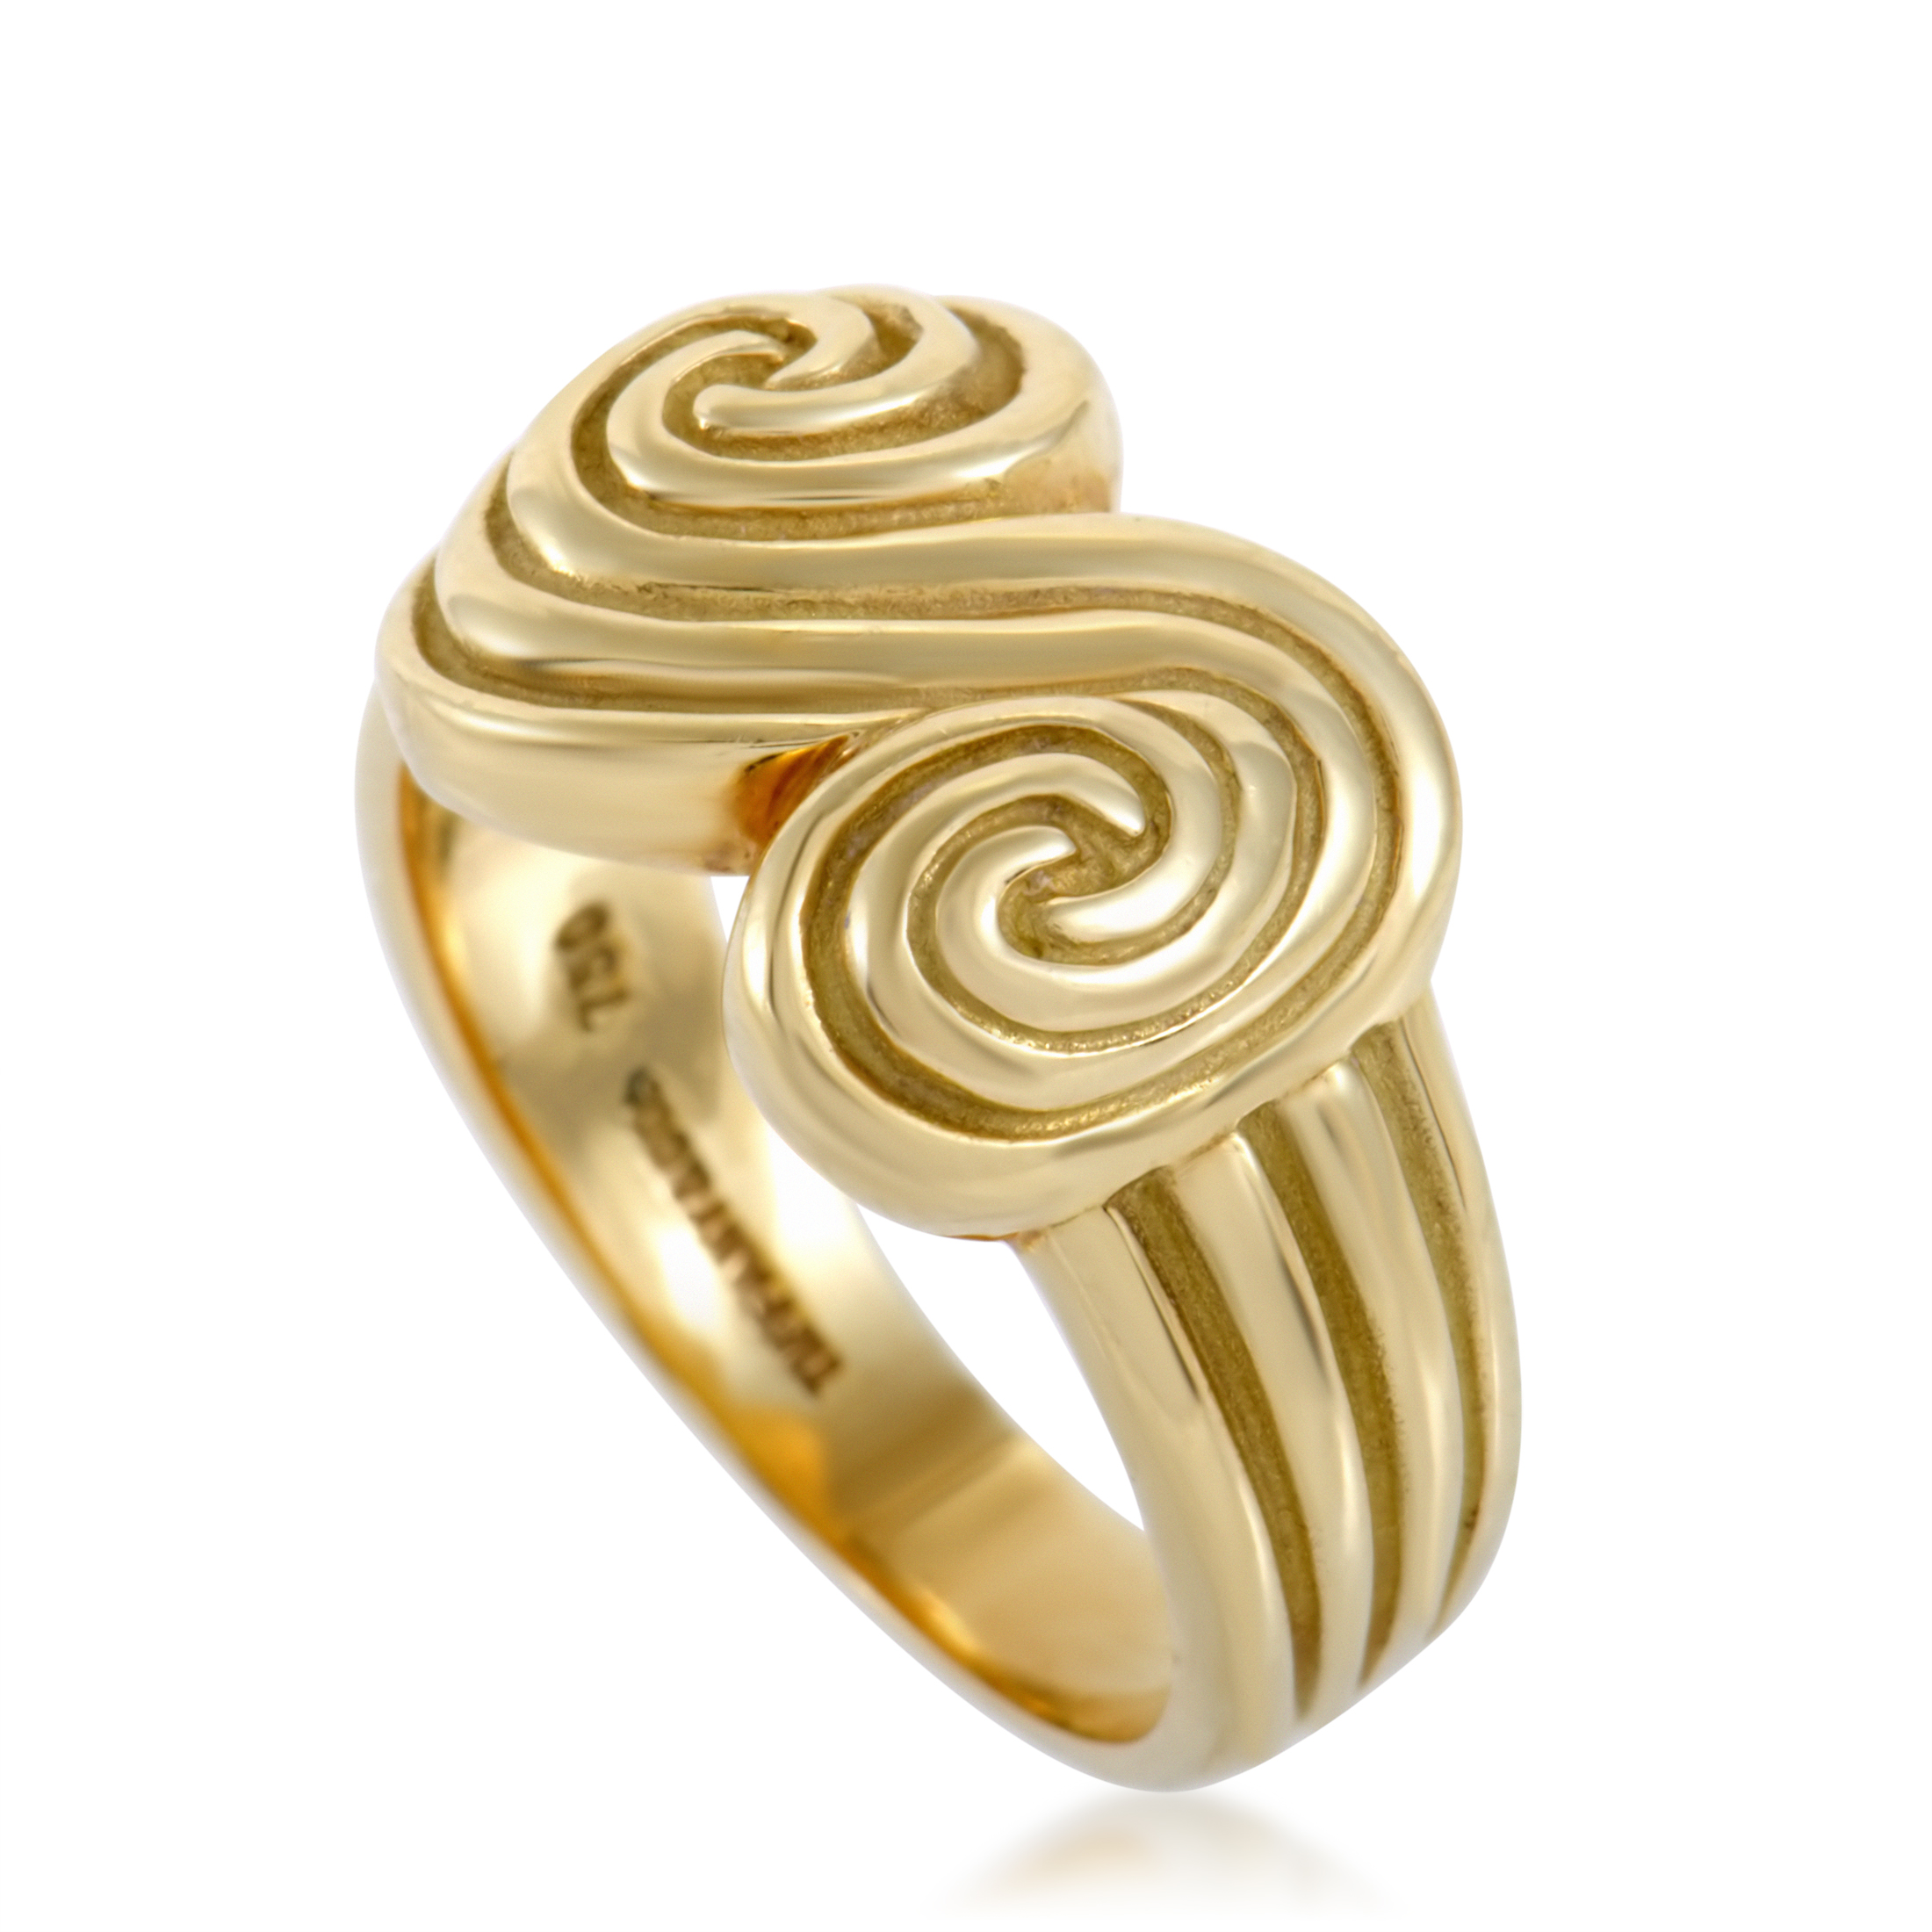 Tiffany Womens Spiro 18K Yellow Gold 2-Swirl Ring